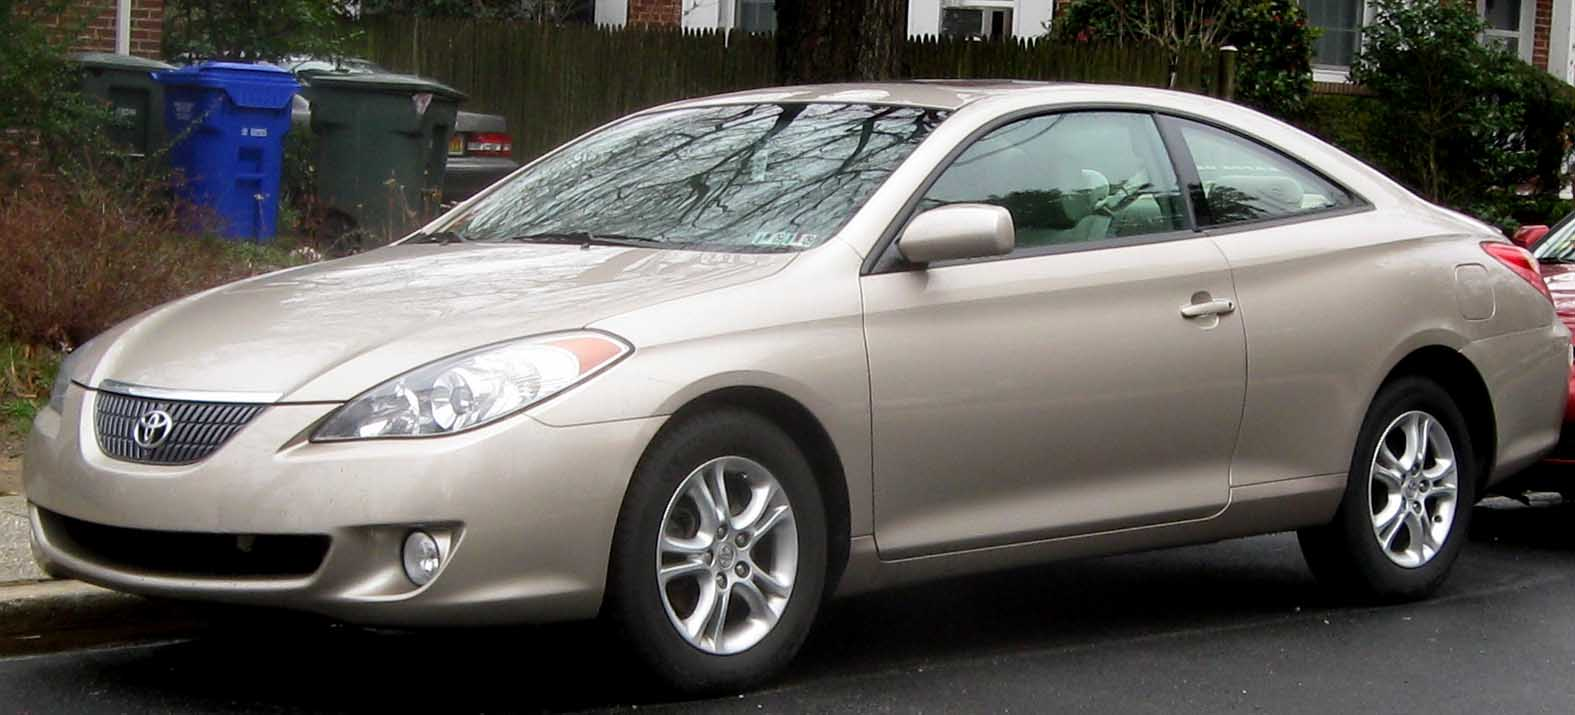 Pictures of toyota solara i coupe 1999 #4